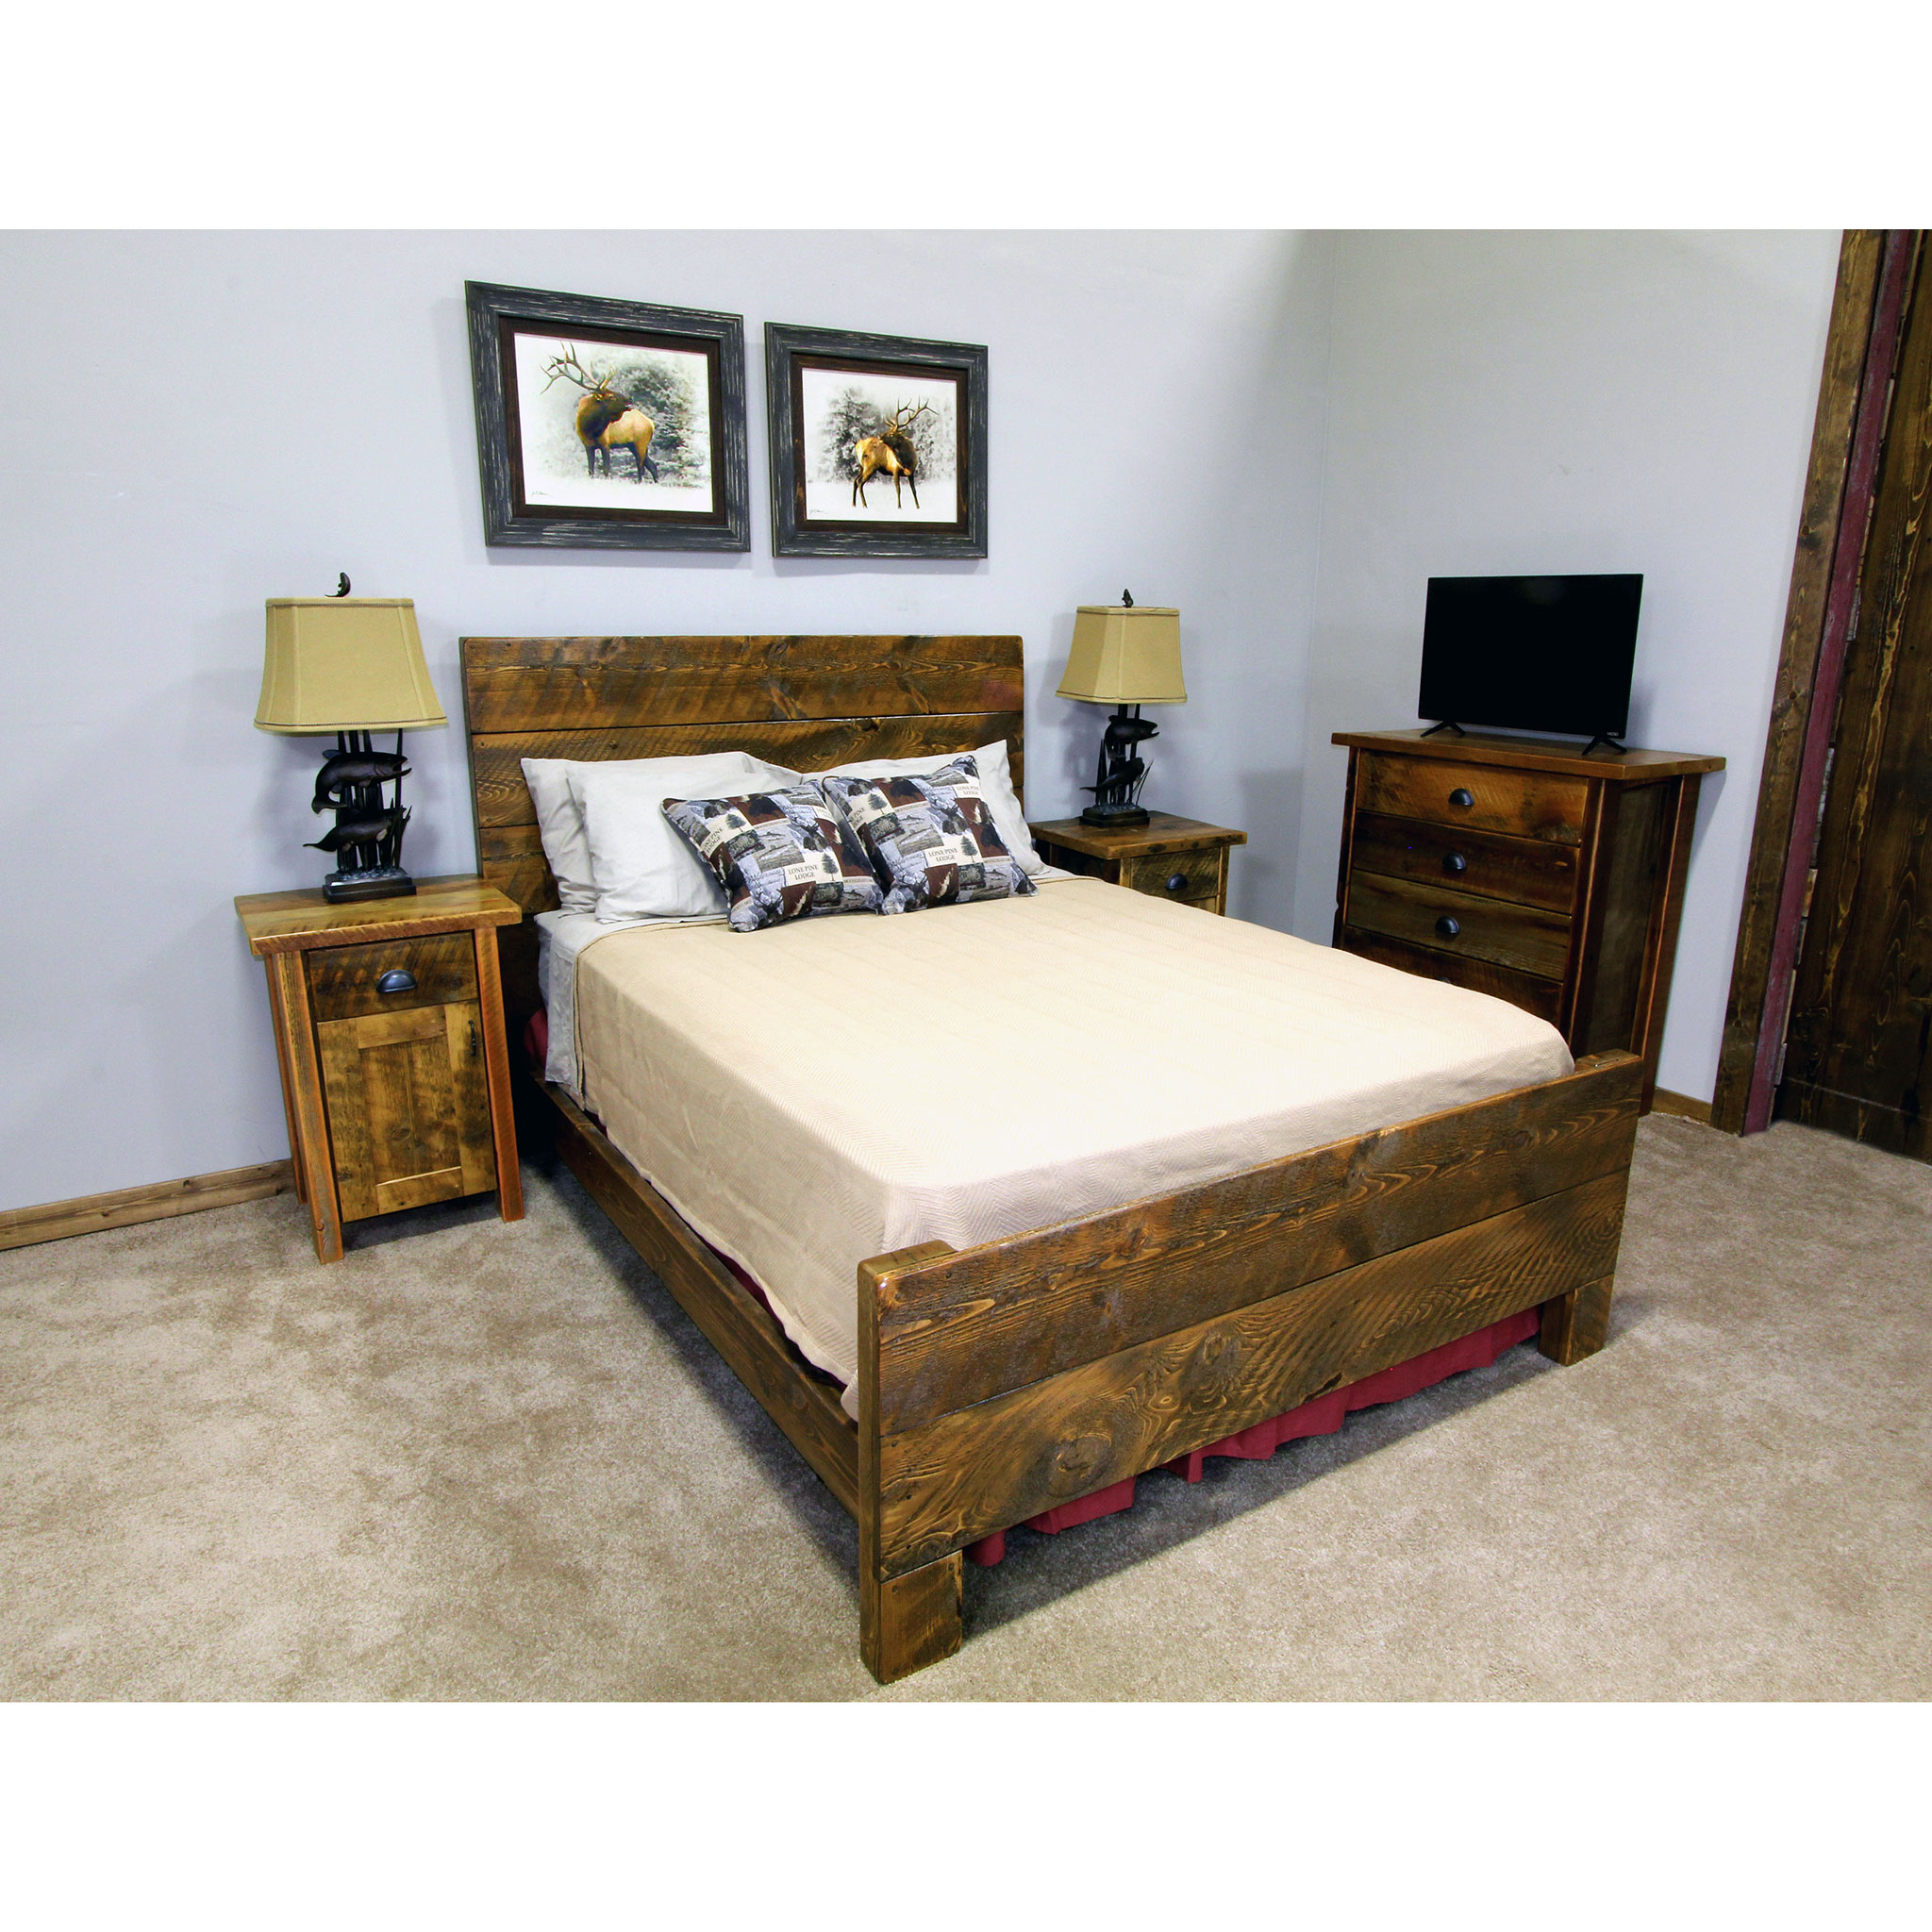 bitterroot  Simple straight plank bed. Shown in rough sawn - rustic brown.